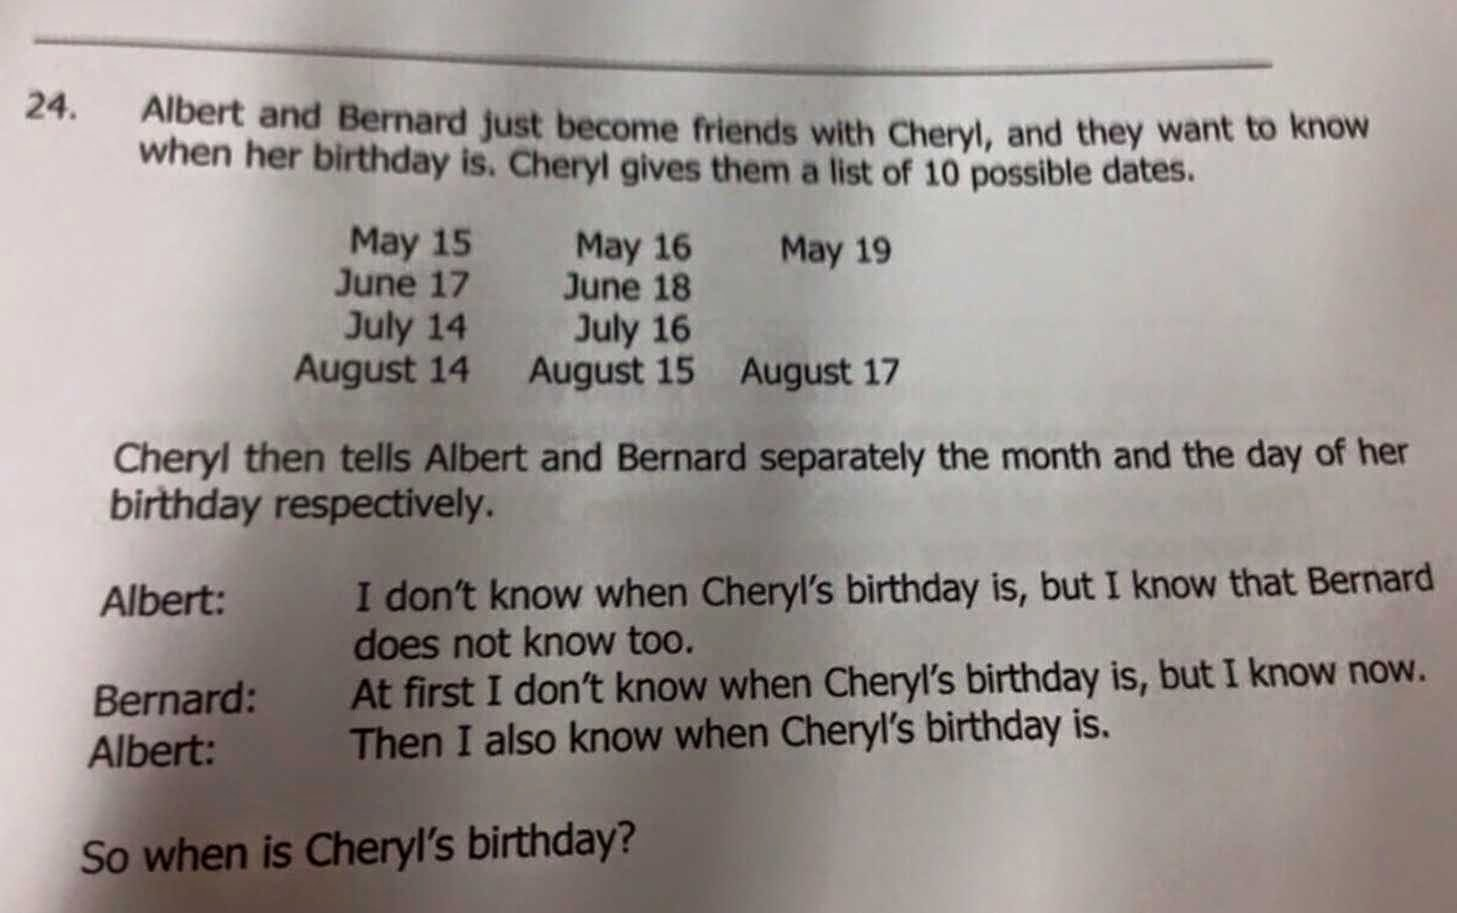 When is Cheryl's Birthday?